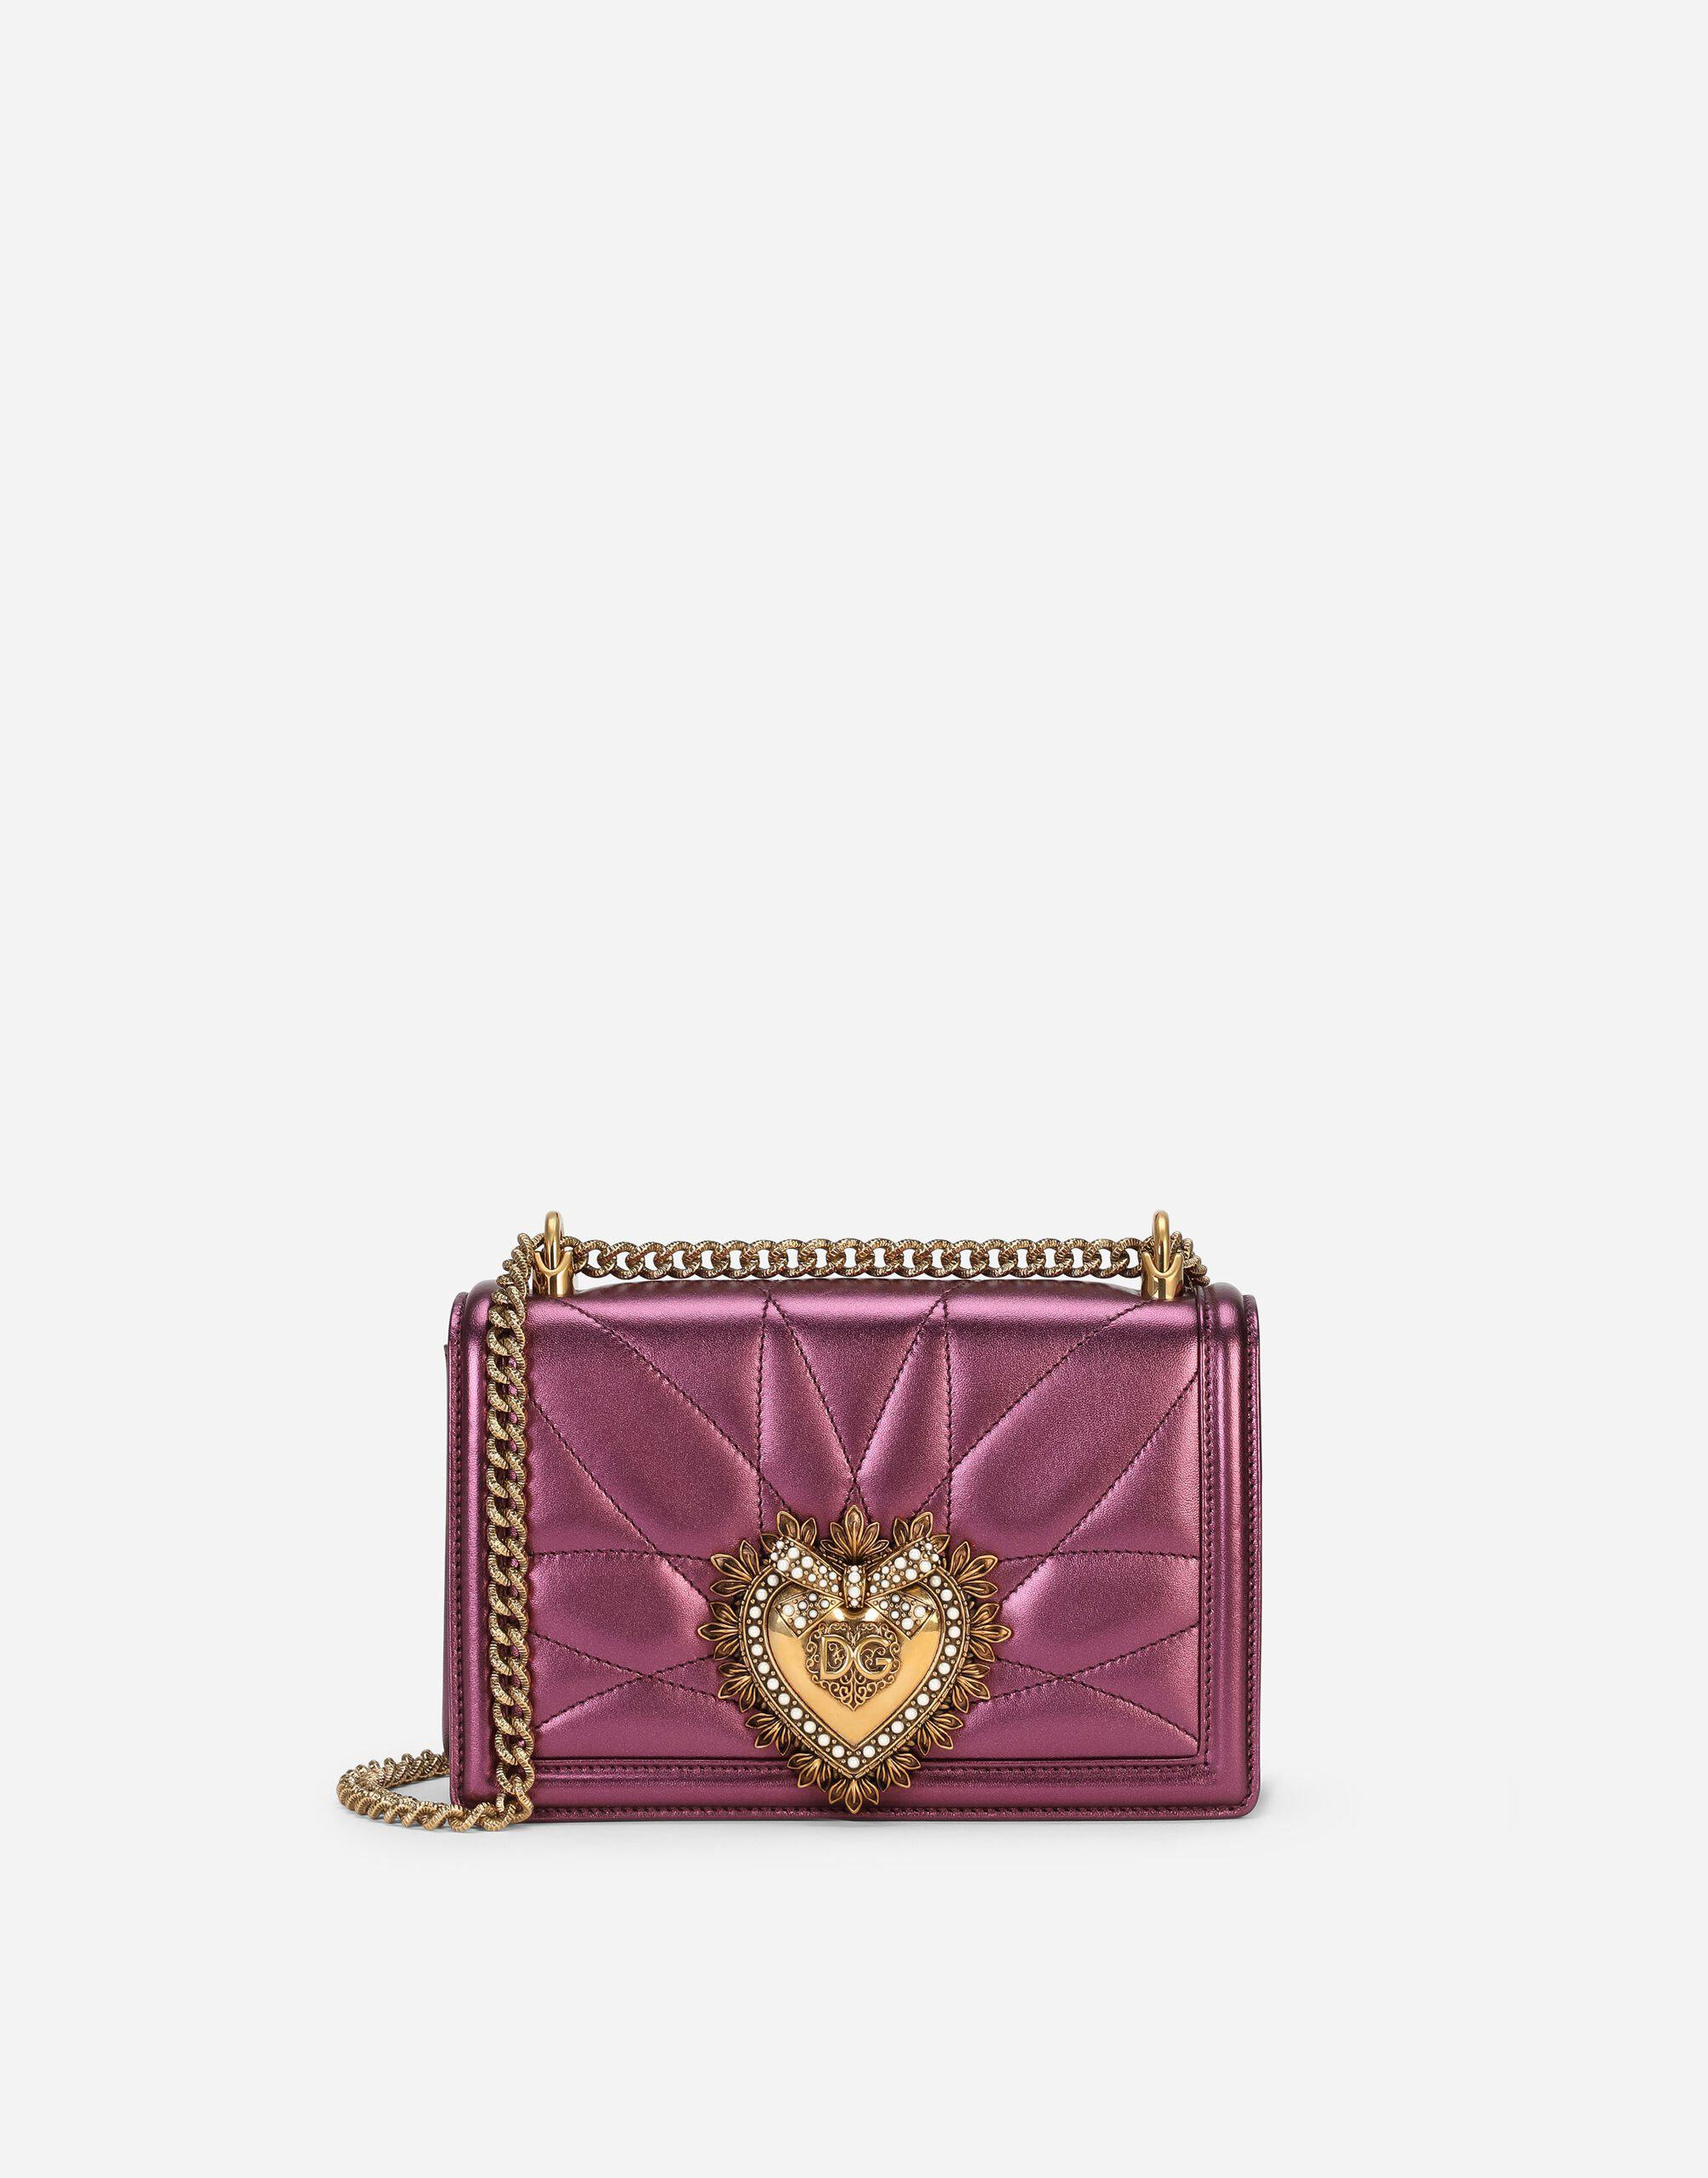 Medium Devotion crossbody bag in quilted nappa mordore leather